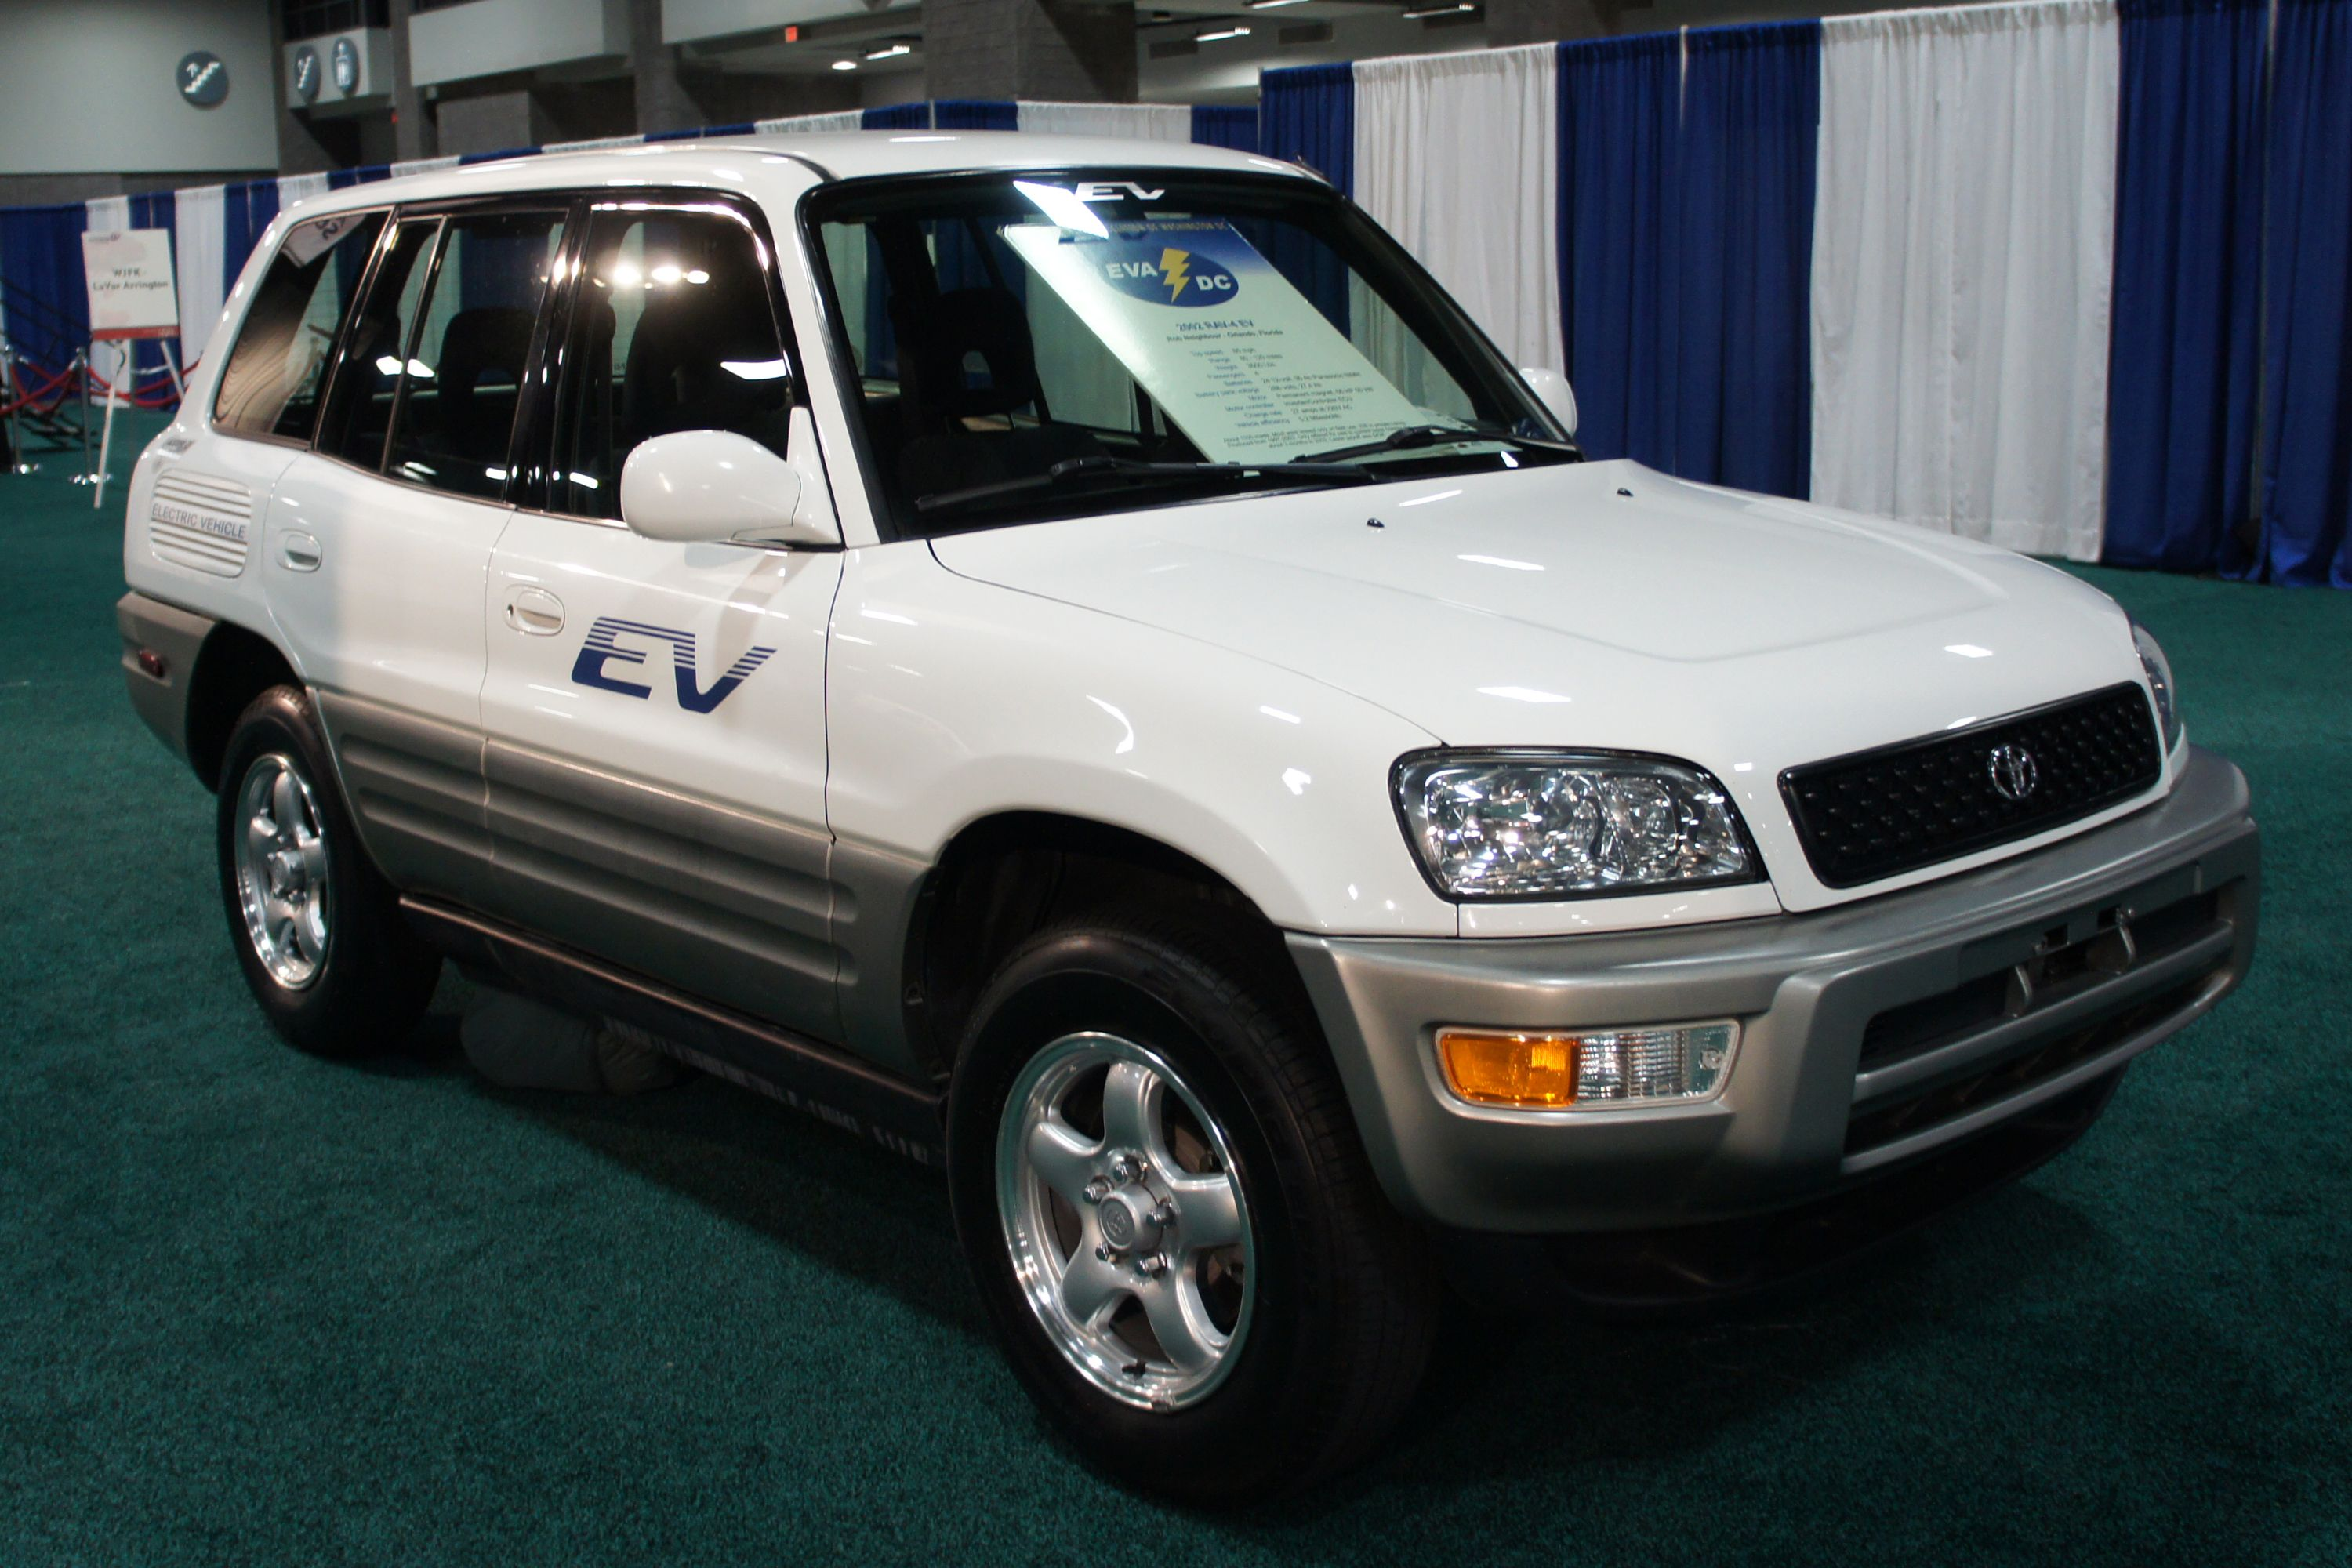 Toyota rav4 ev wikipedia the free encyclopedia